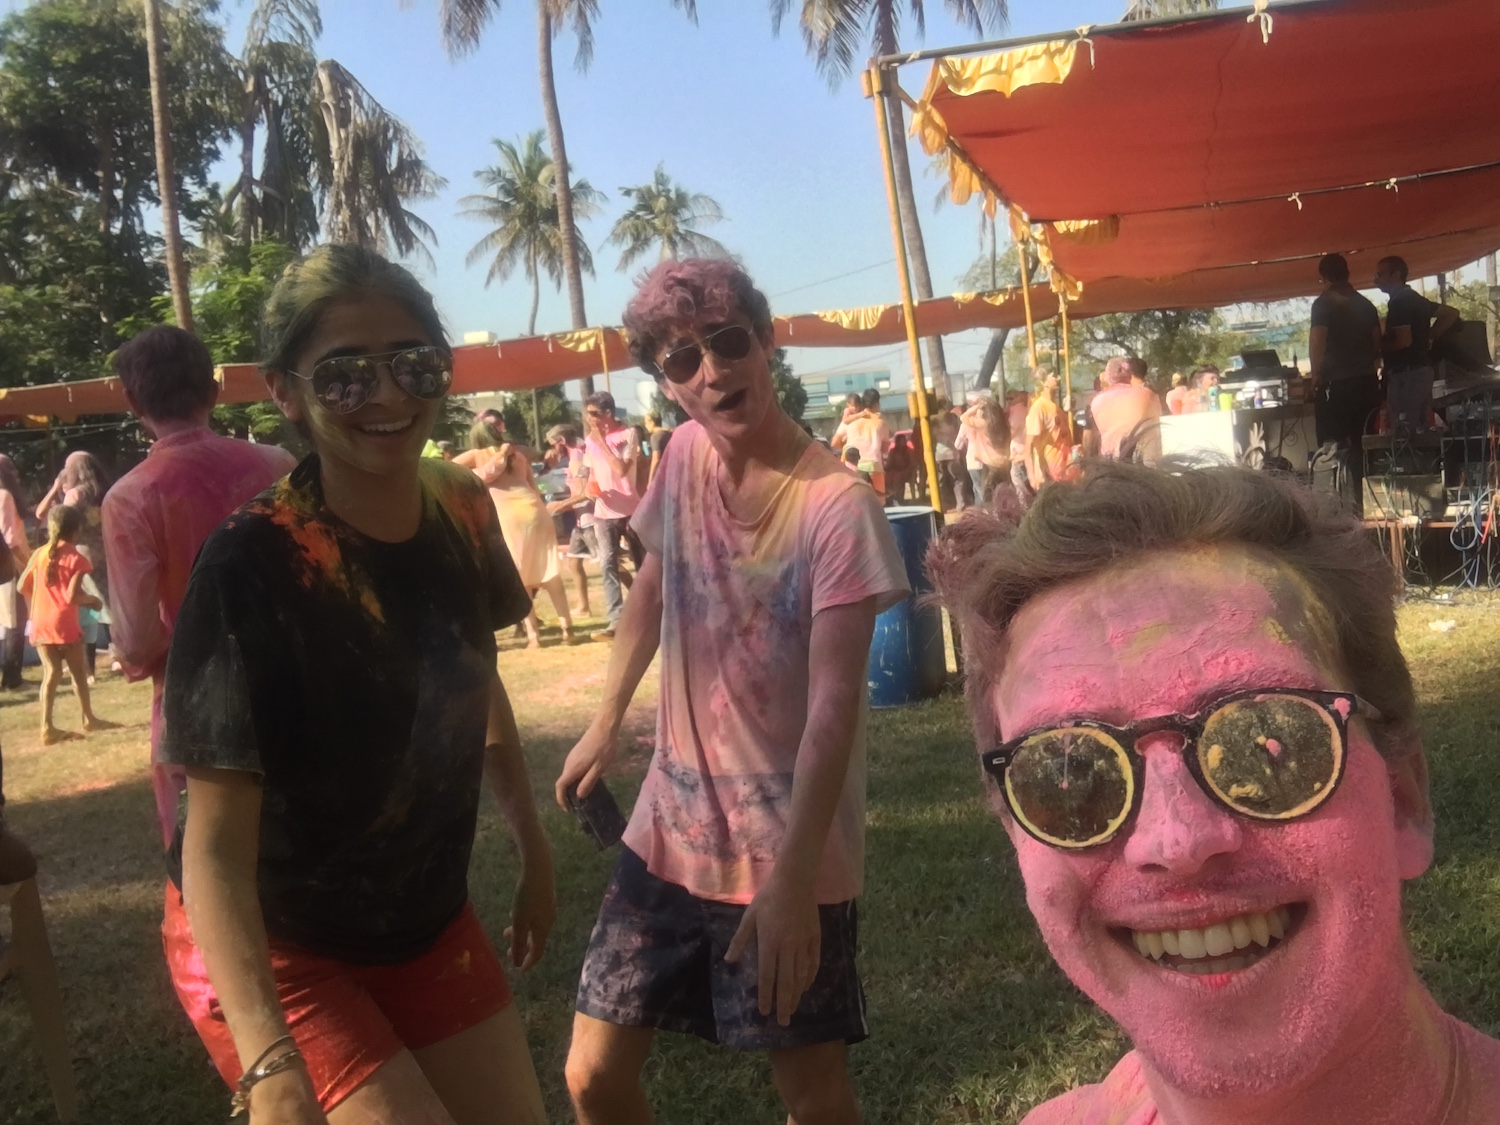 A gem from Holi last week